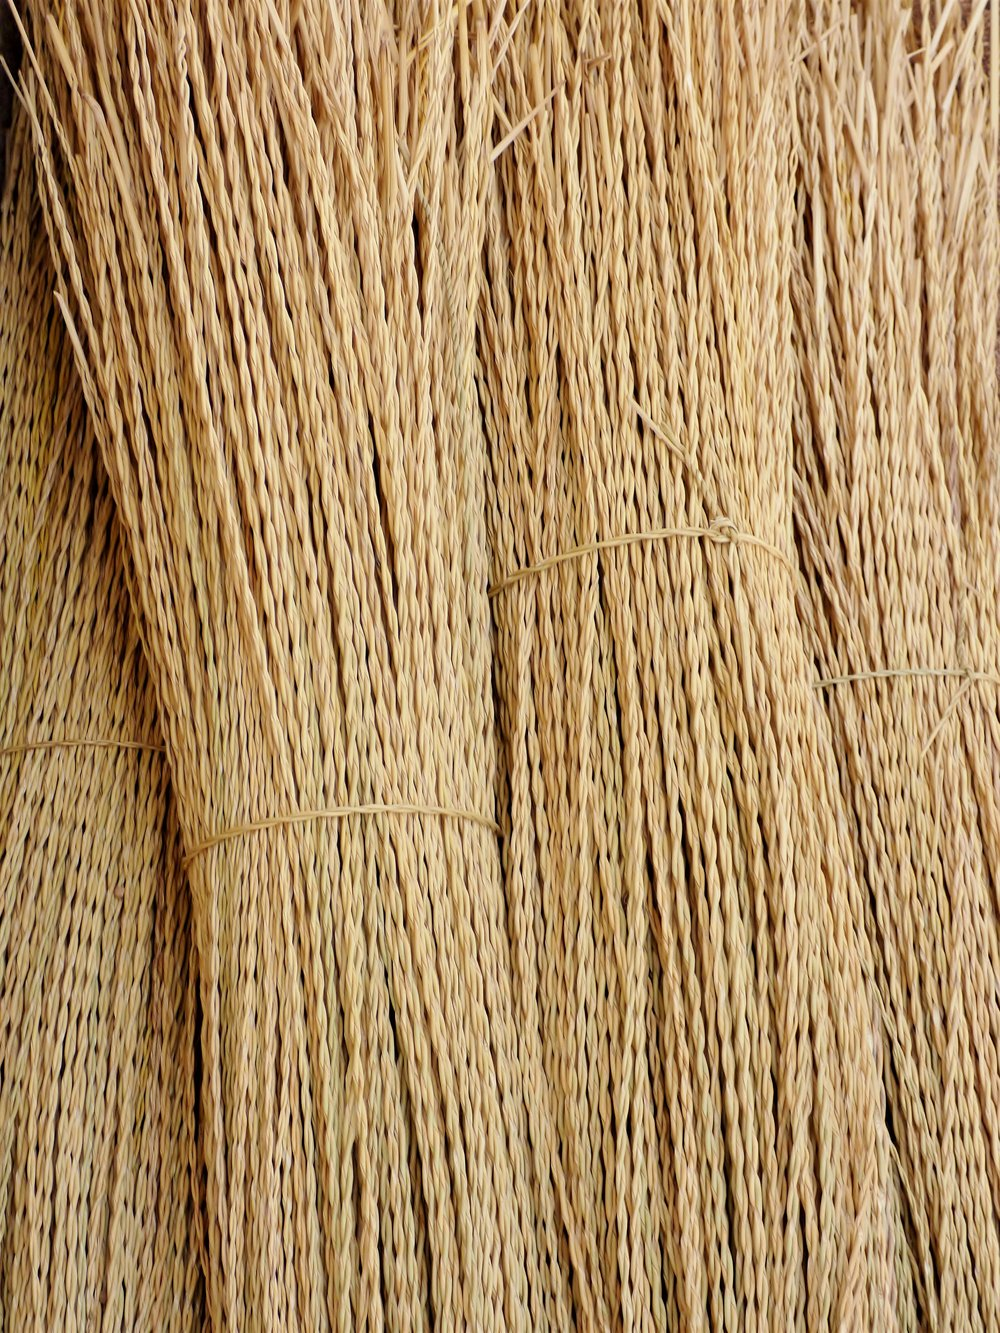 Twisted elephant grass ready for weaving.